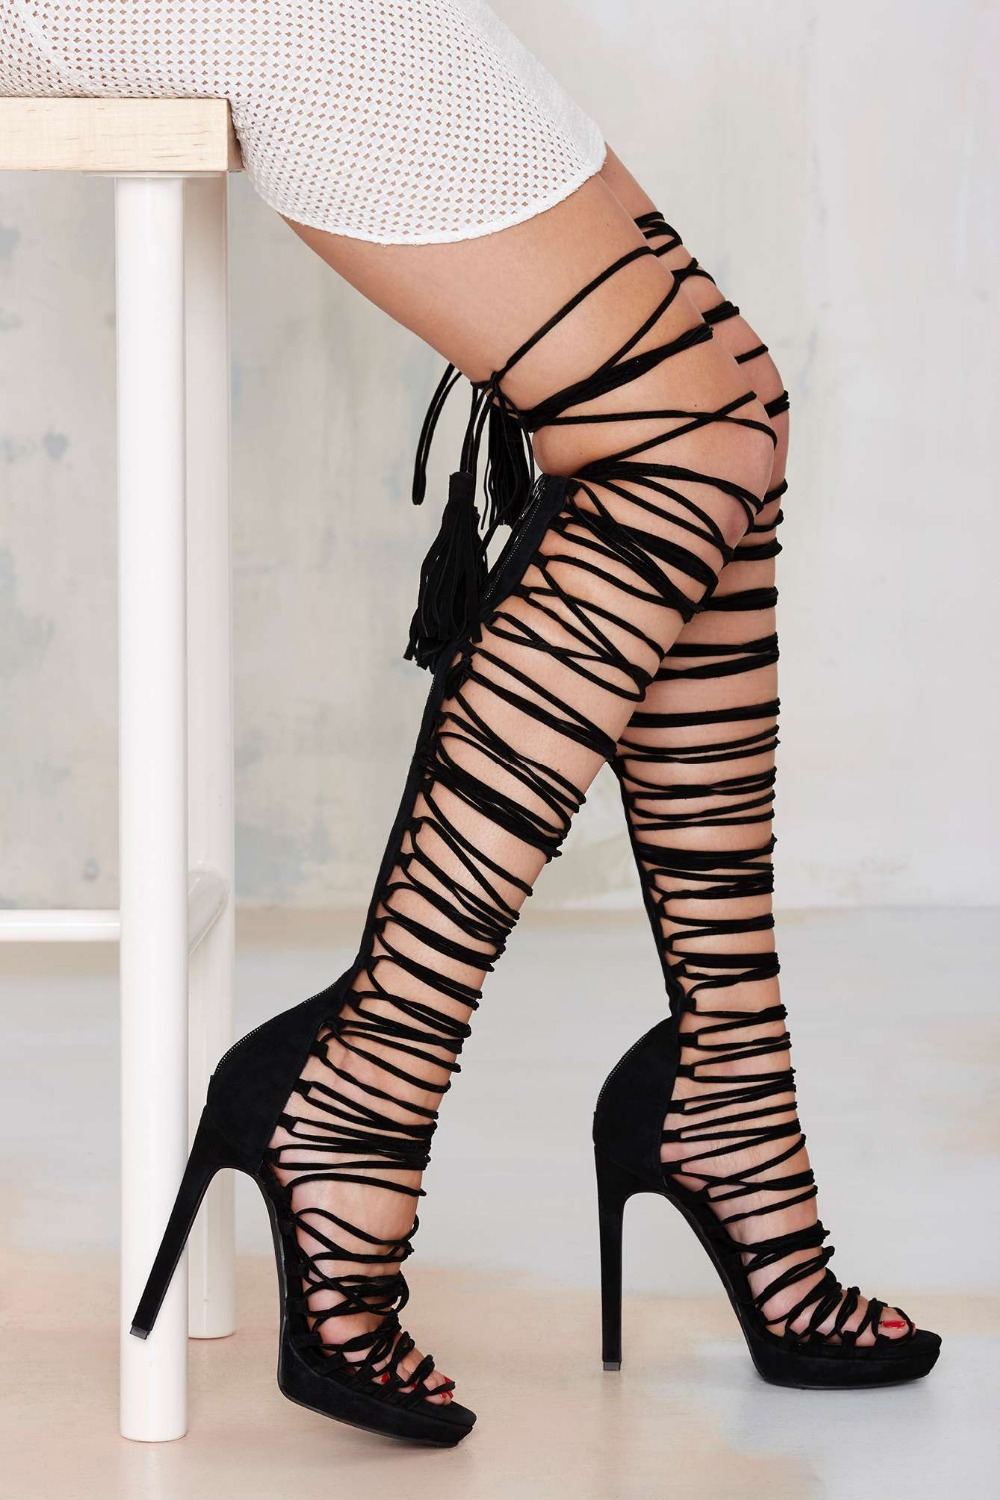 Gladiator High Heels Knee High